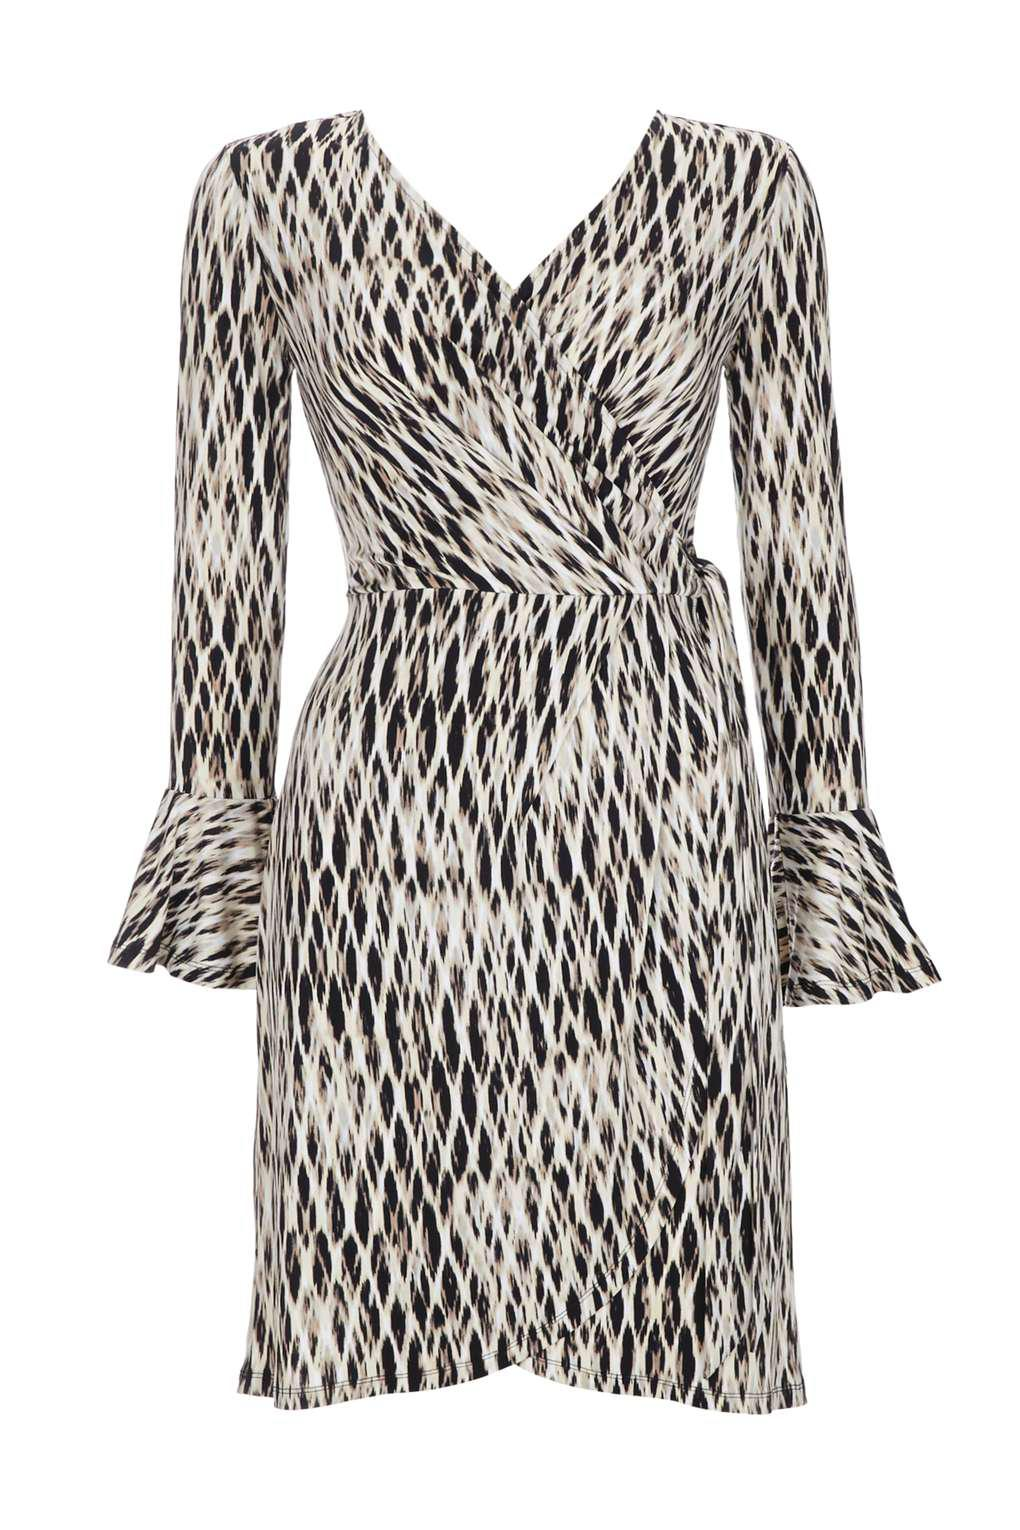 28355c9e307 Gallery. Previously sold at: Wallis · Women's Geometric Dresses